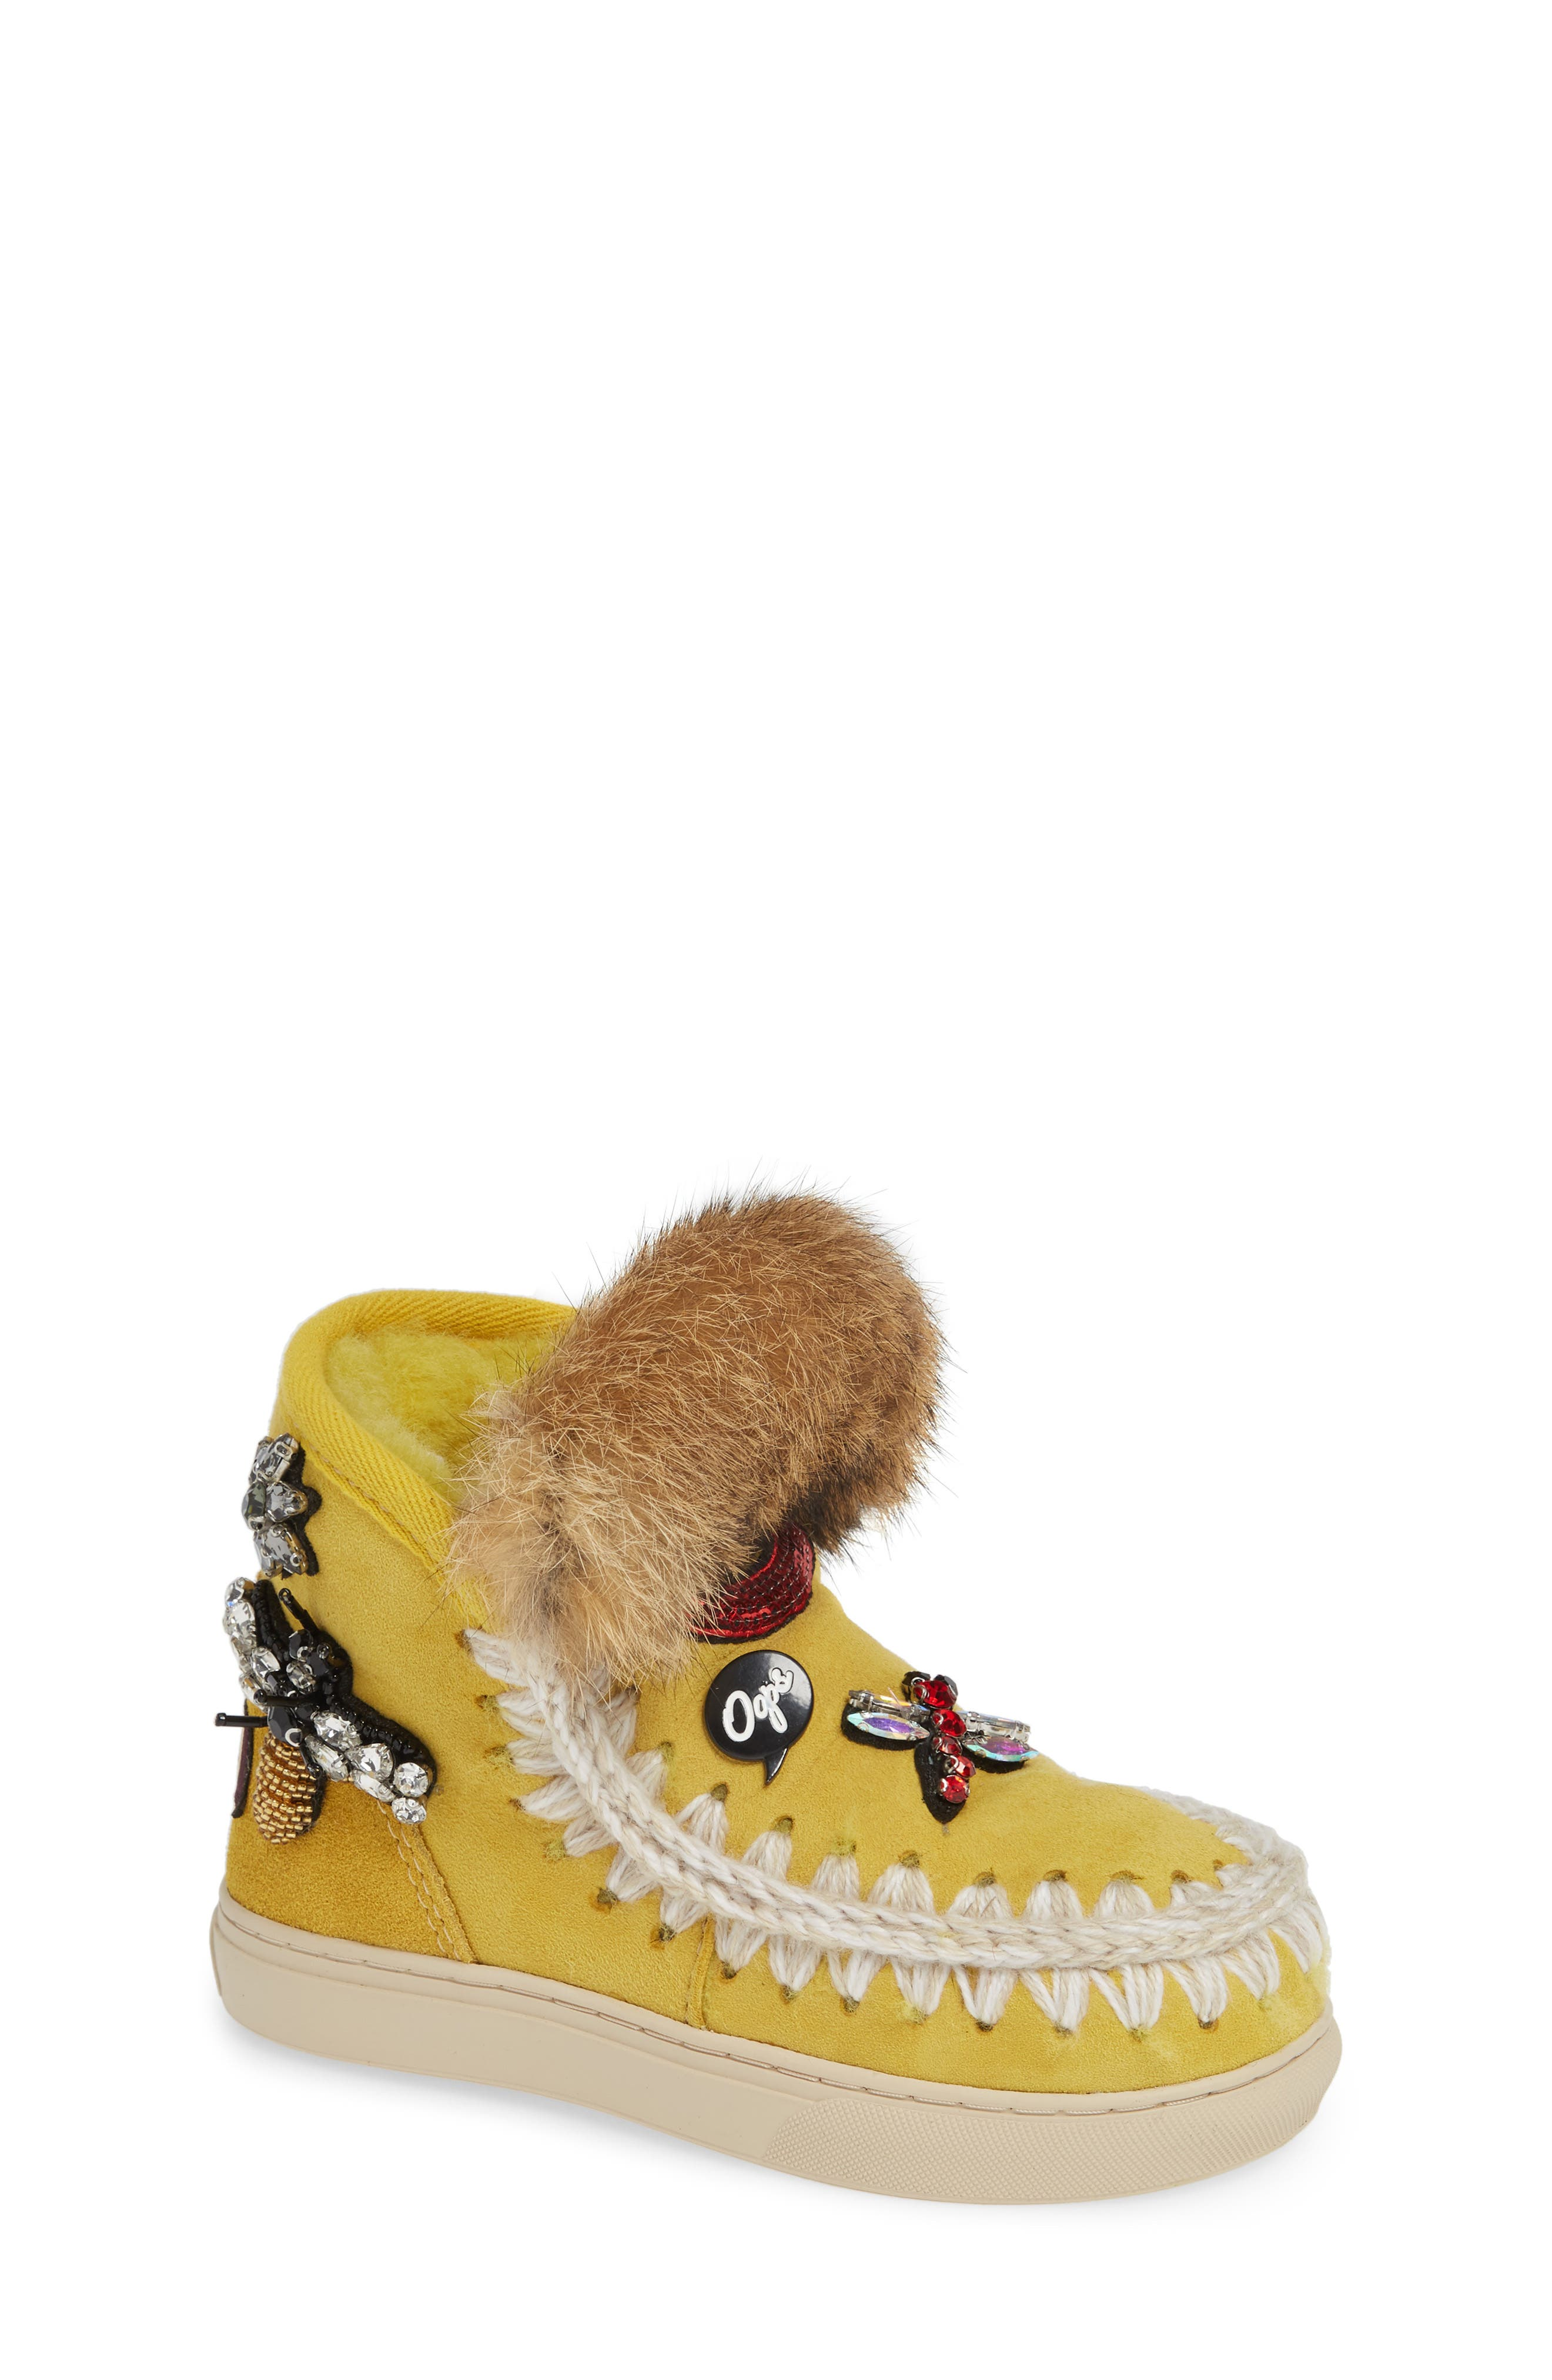 Embellished Genuine Shearling Sneaker Boot,                         Main,                         color, OLIVE YELLOW